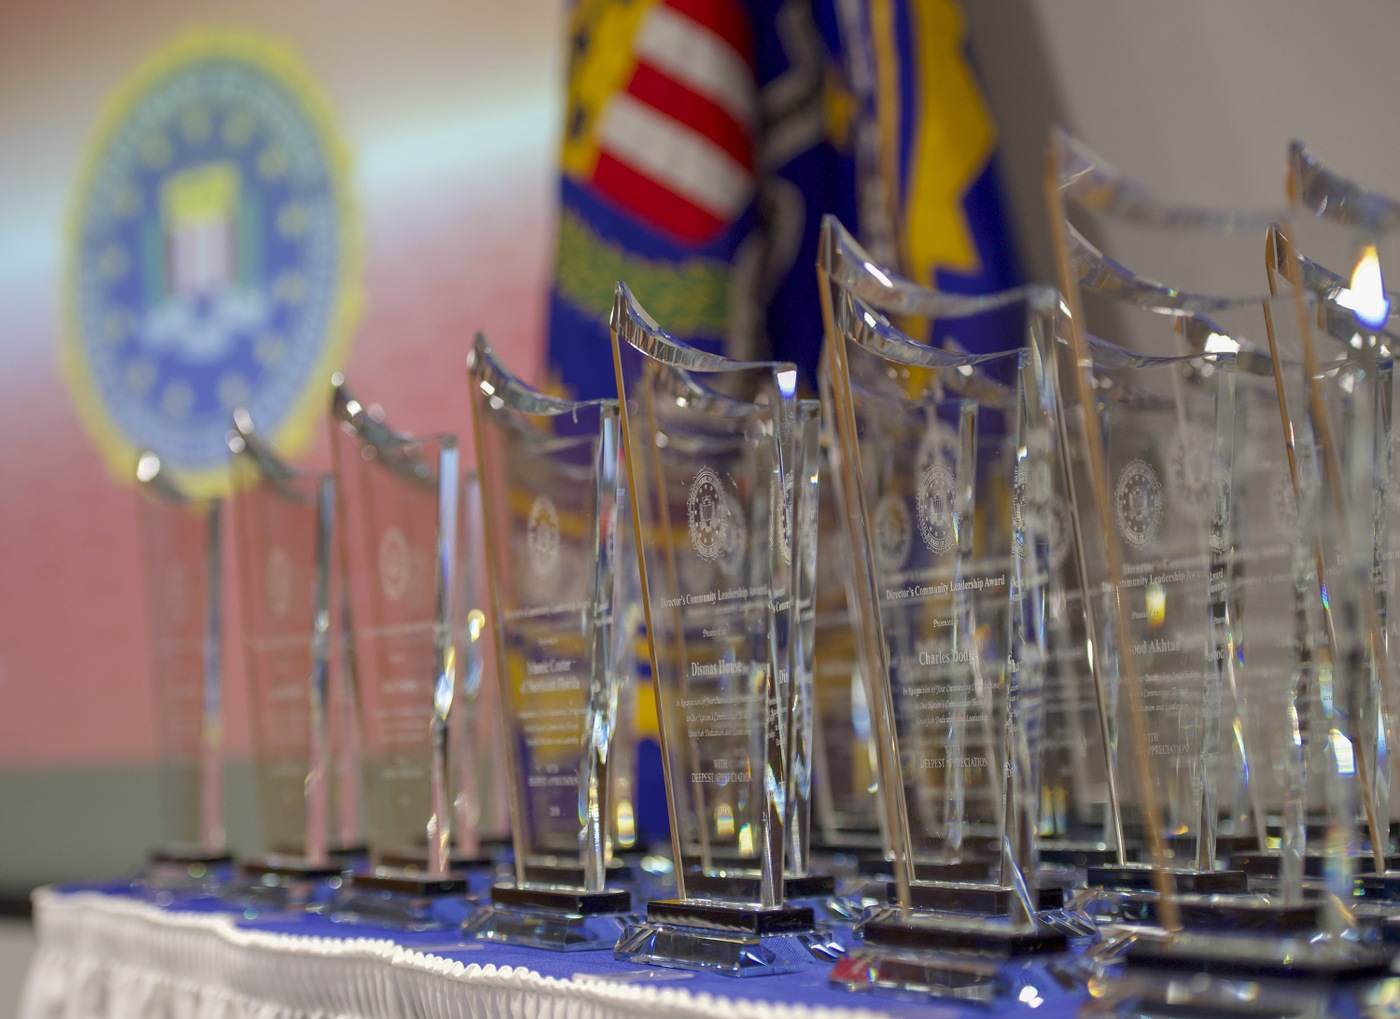 2018 Director's Community Leadership Award trophies on table with FBI flag in background prior to their presentation at a May 3, 2019 ceremony at FBI Headquarters.